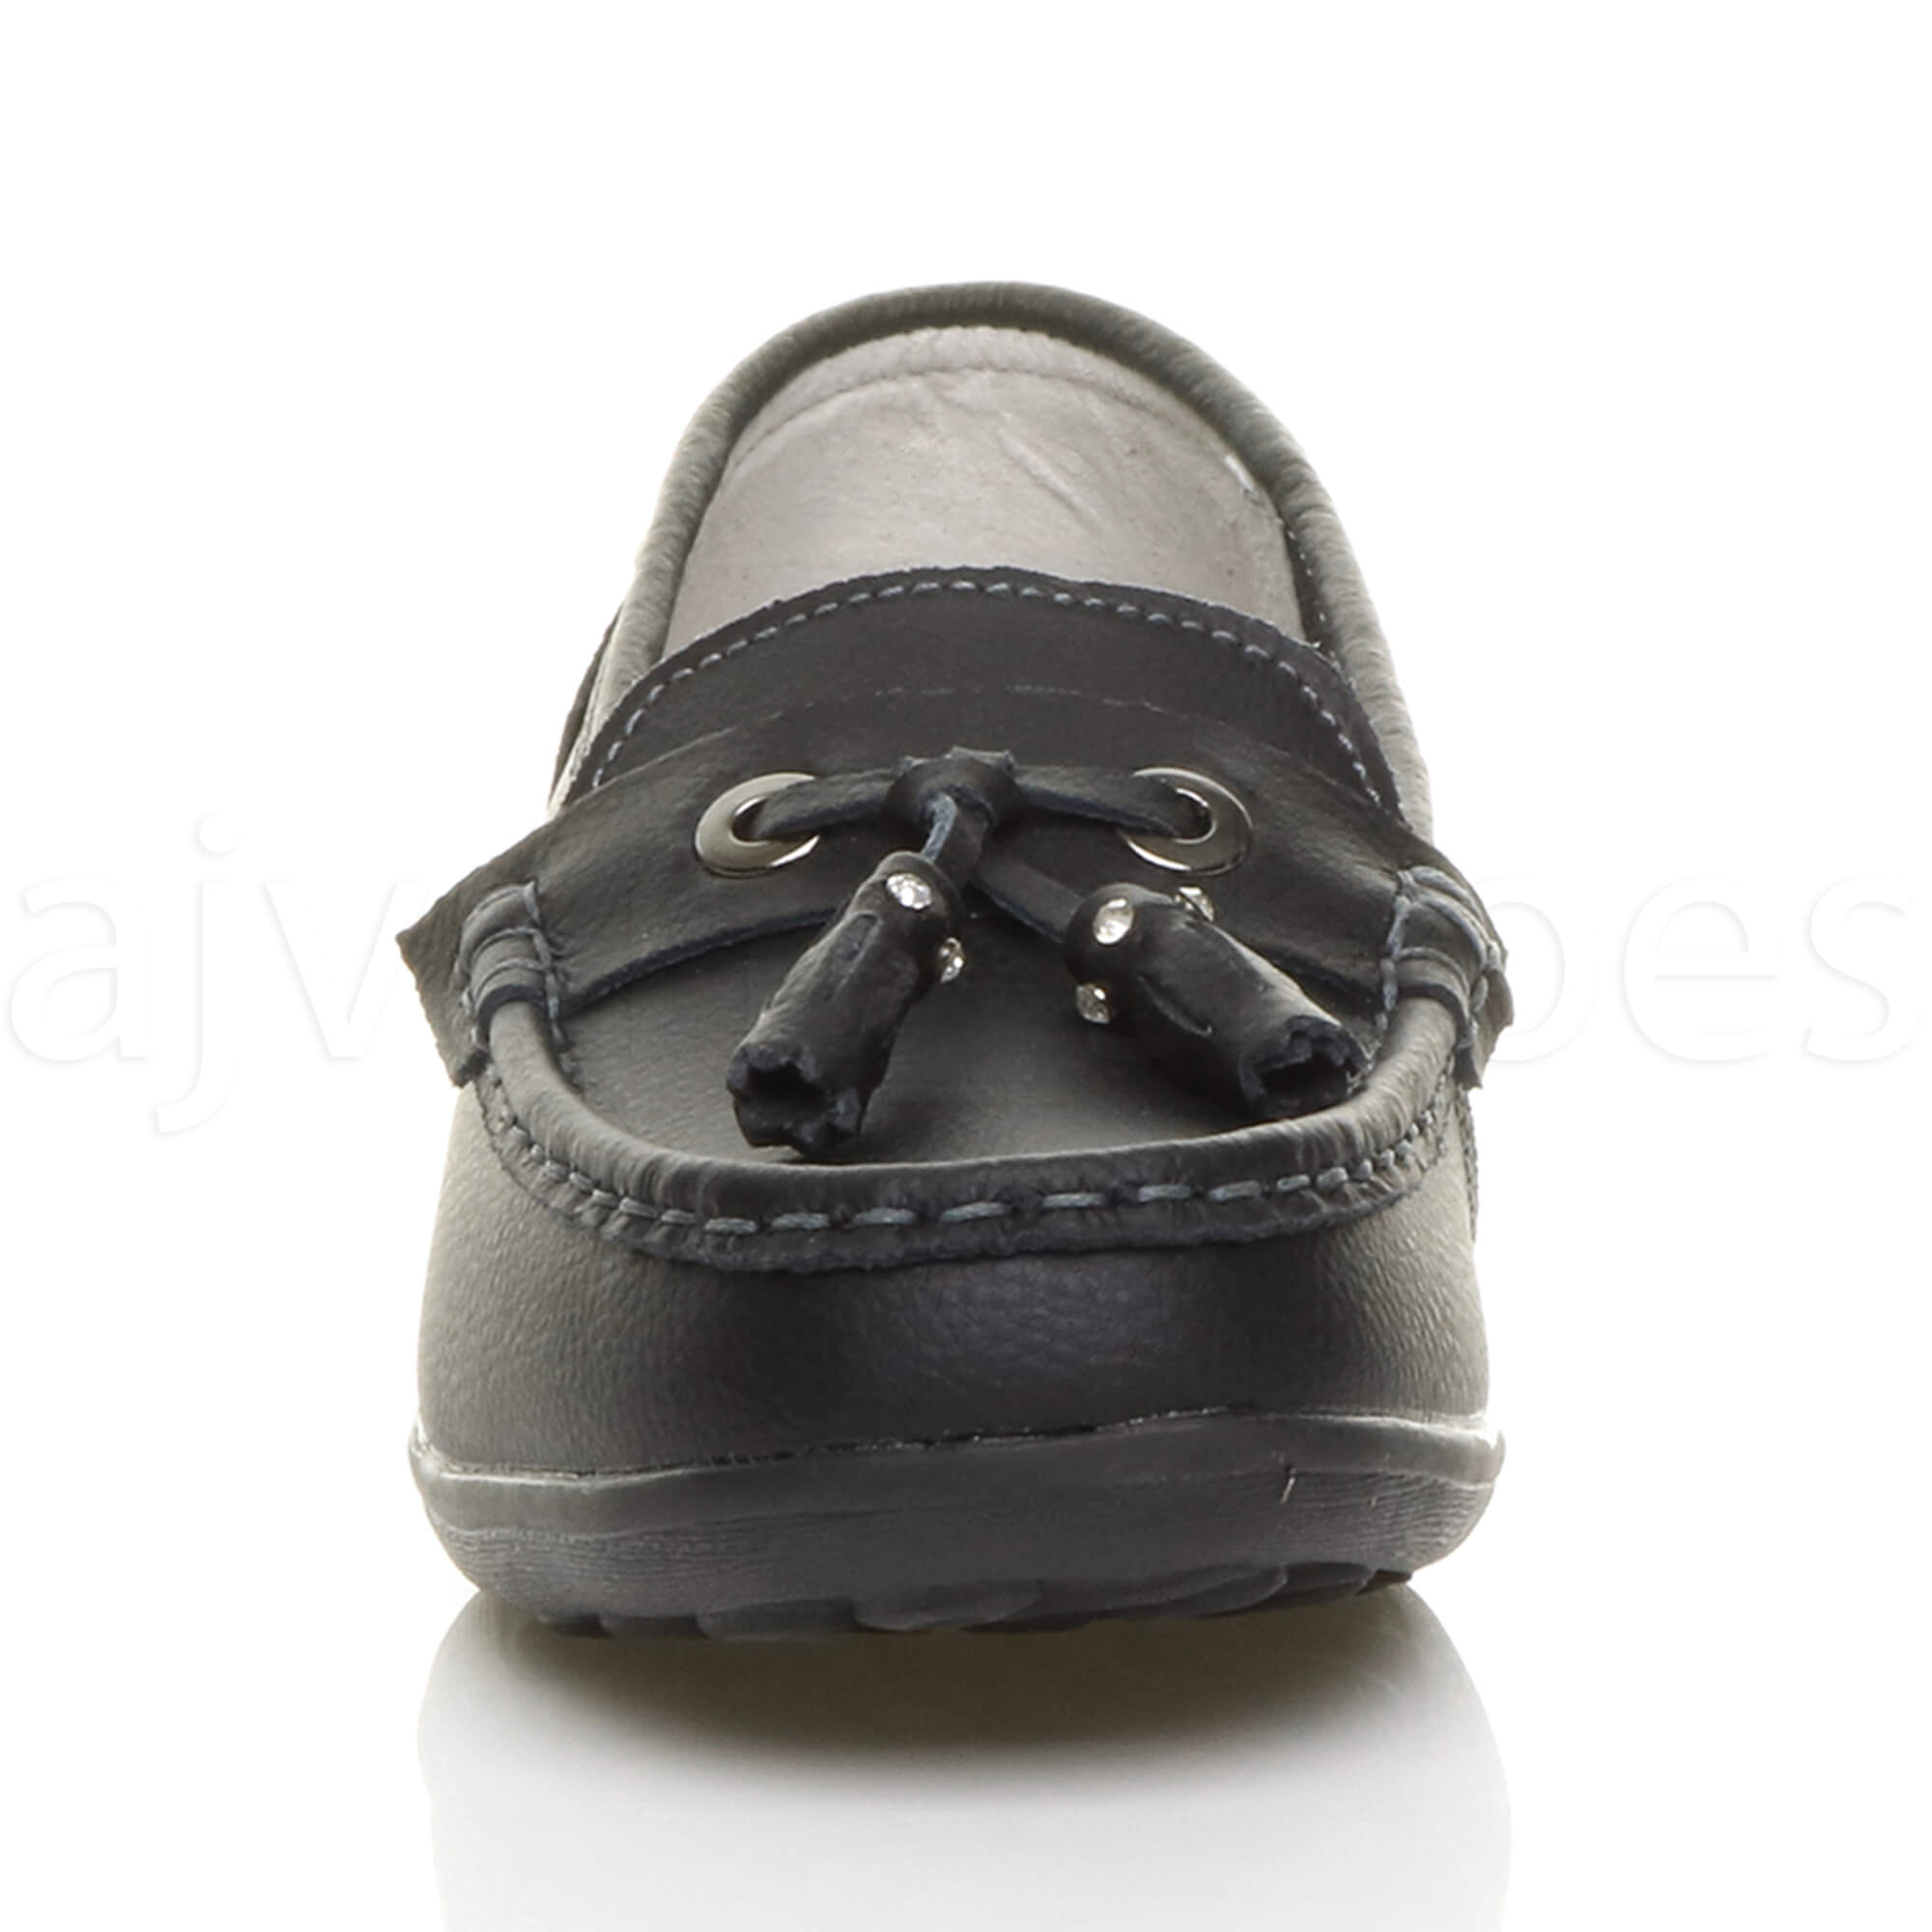 WOMENS-LADIES-LOW-HEEL-WEDGE-LEATHER-TASSEL-LOAFERS-COMFORT-MOCCASINS-SHOES-SIZE thumbnail 15